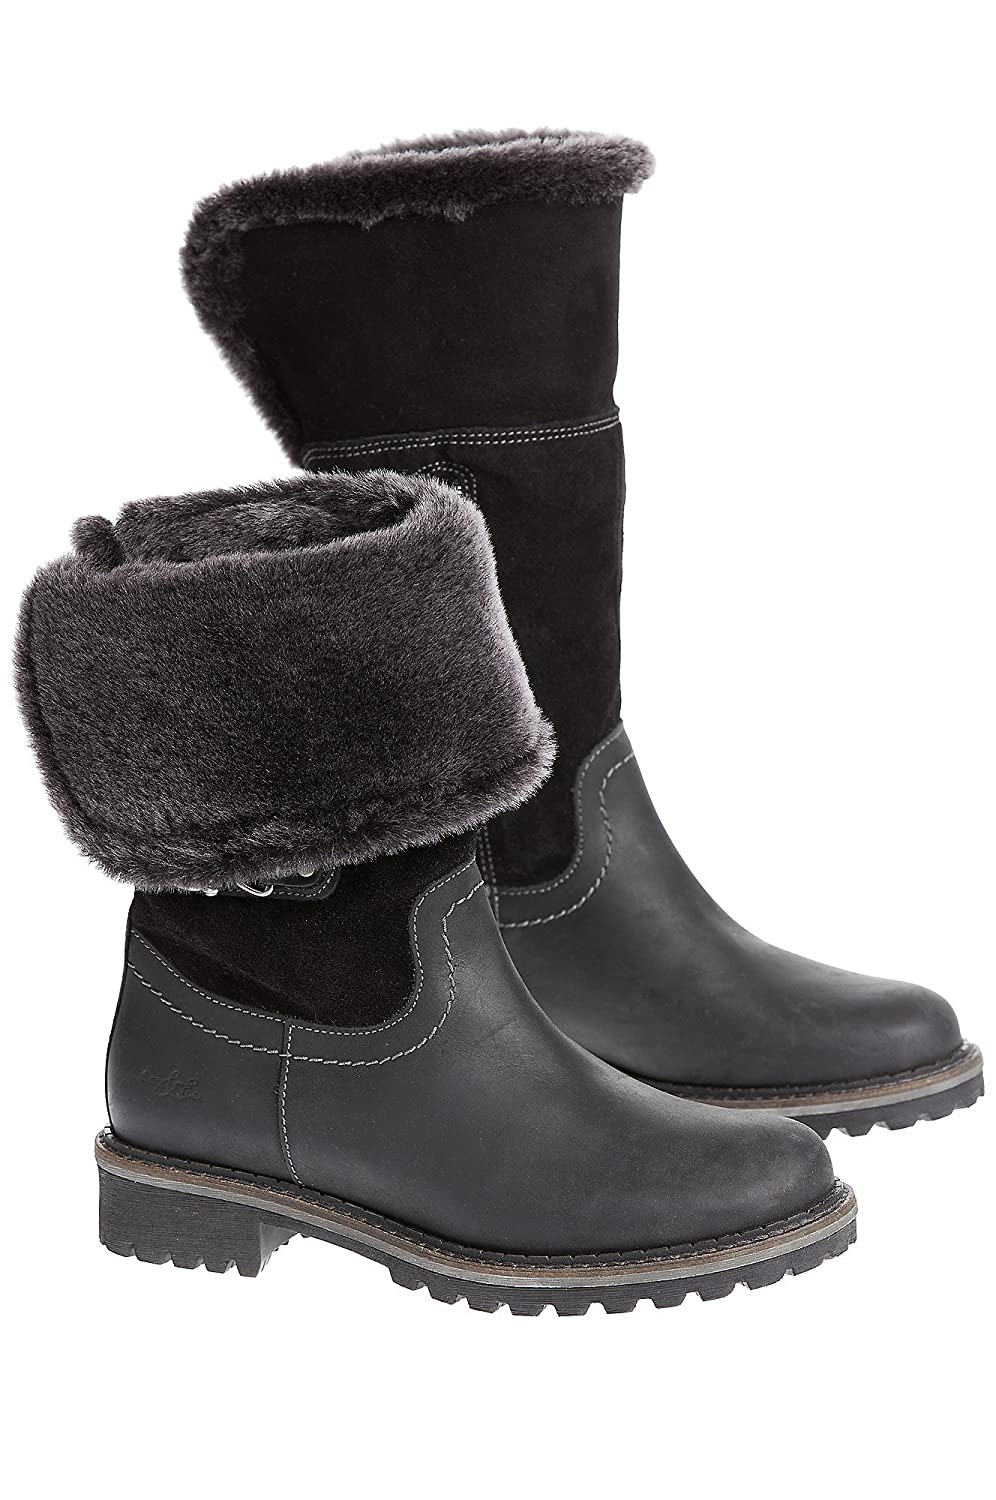 40d497fb Women's Overland Hillory II Wool-Lined Waterproof Leather Boots with  Shearling Cuffs durable modeling